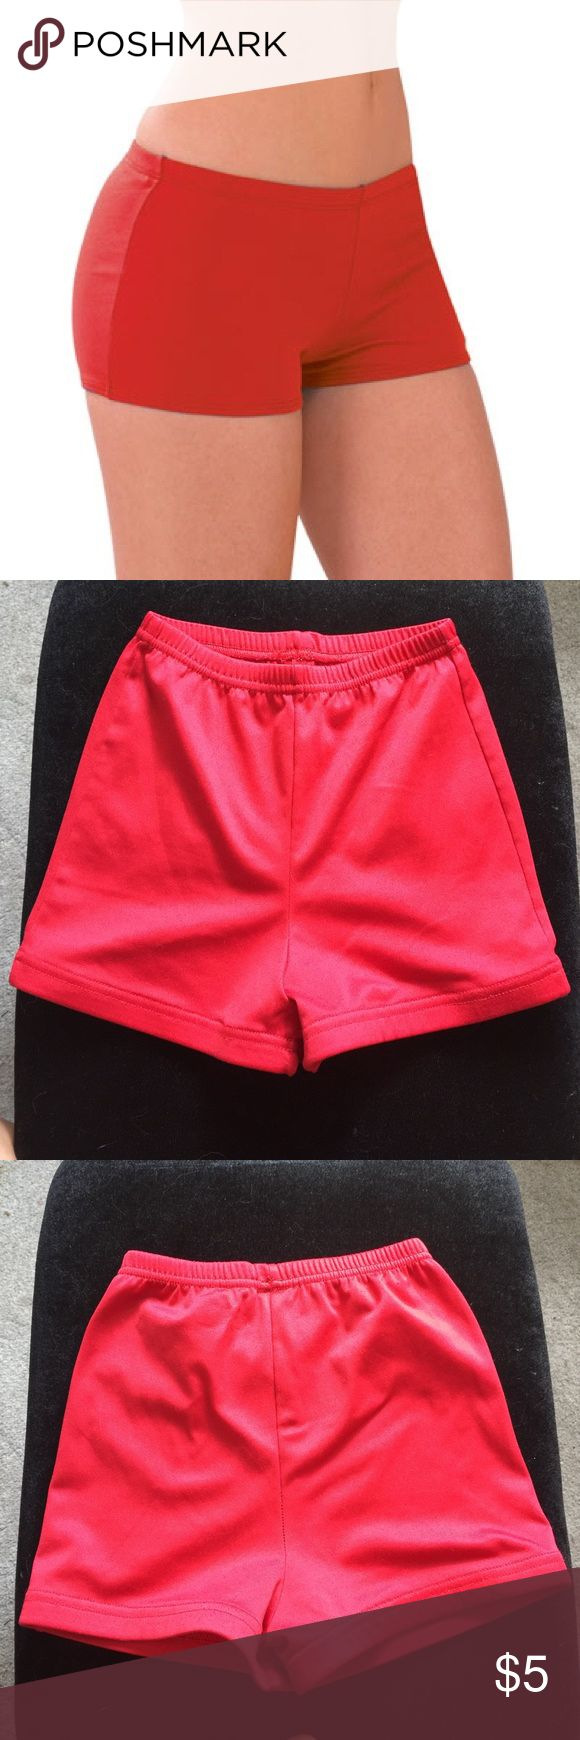 Cheer Bloomers/Shorts Red Cheerleading Bloomers • For under your cheer skirt to avoid people seeing your underwear at competitions and games • Or could be used a workout shorts or for cheer practice • Good condition, barely ever worn • Shorts